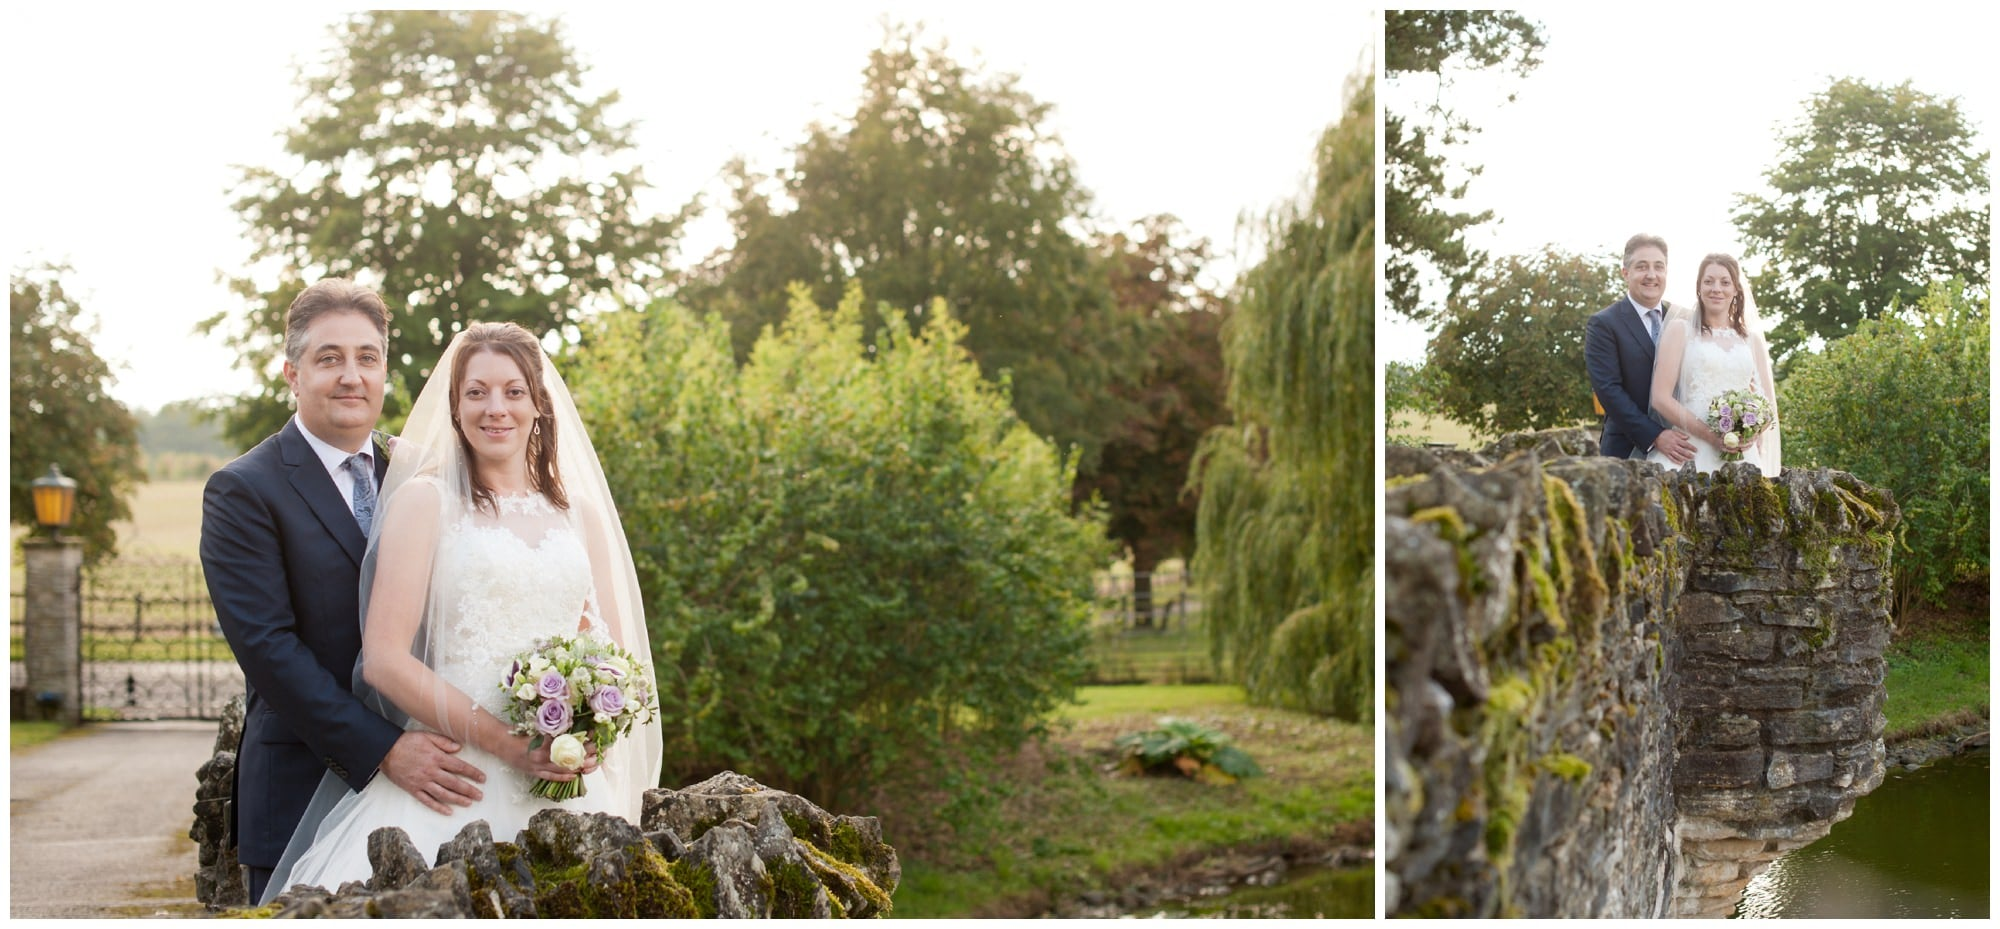 Bride and Groom Portraits at Hampshire Family Estate